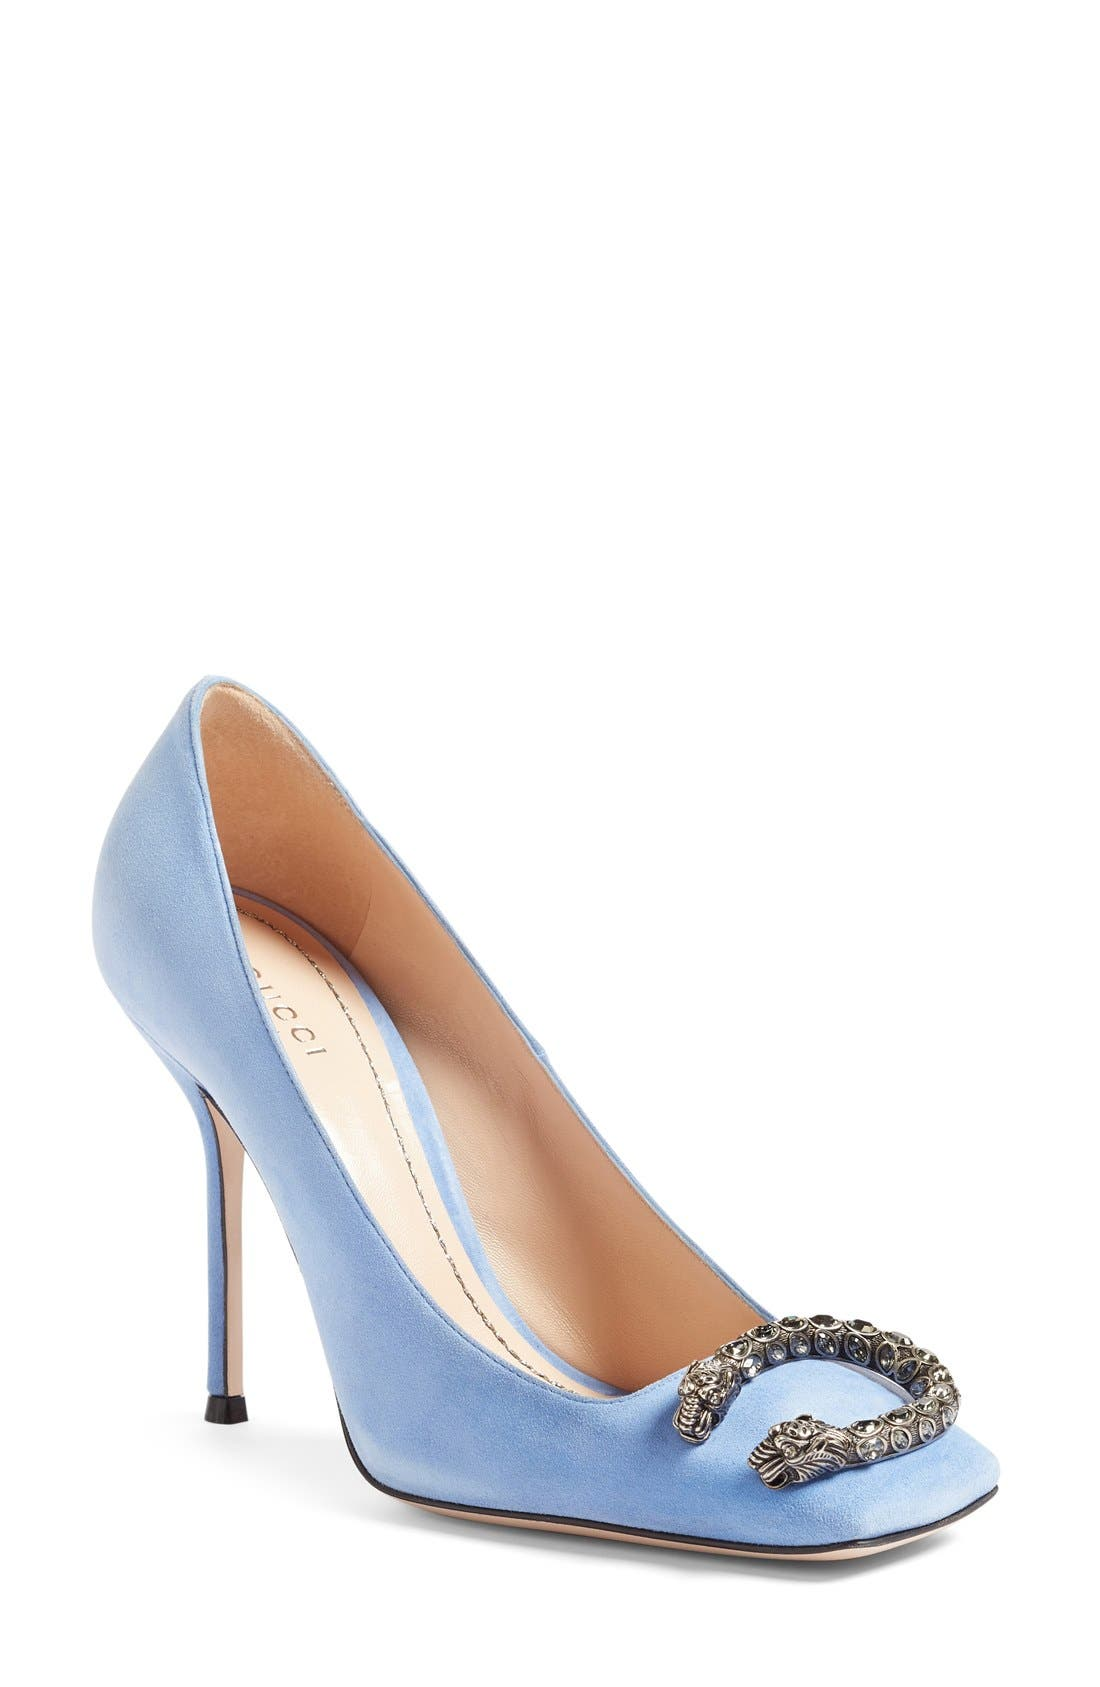 Alternate Image 1 Selected - Gucci Dionysus Embellished Square Toe Pump (Women)